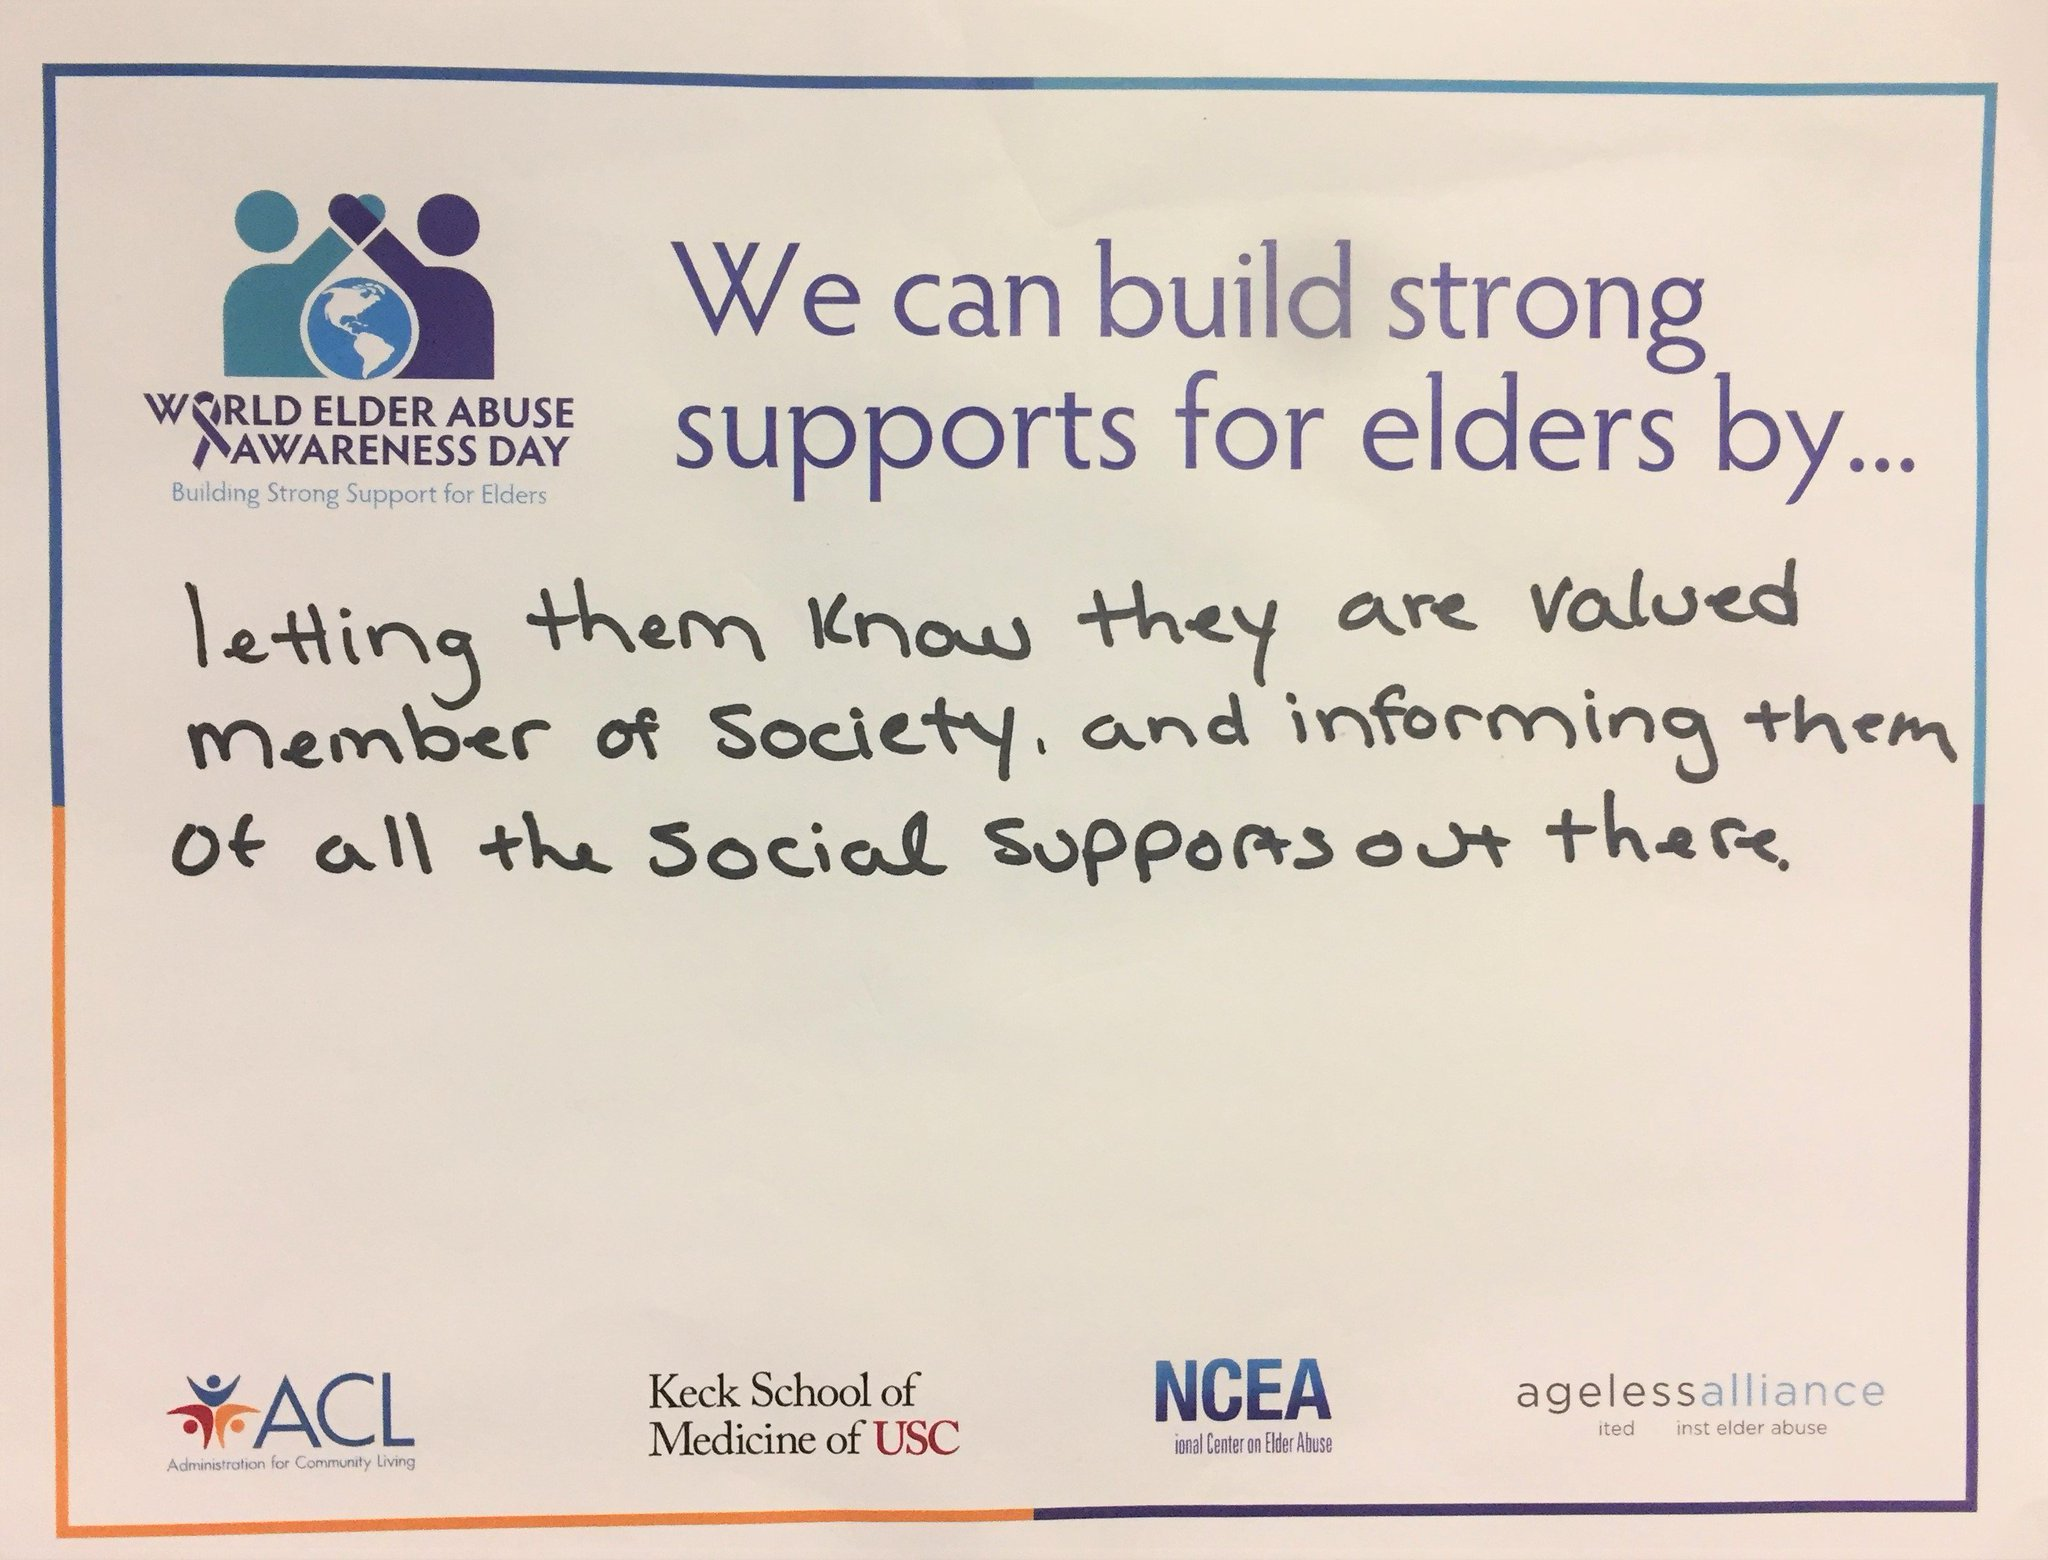 We can build strong supports for elders by... #endelderabuse #WEAAD @NCEAatUSC @ACLgov @AgelessAlliance https://t.co/xUIpohzH7P